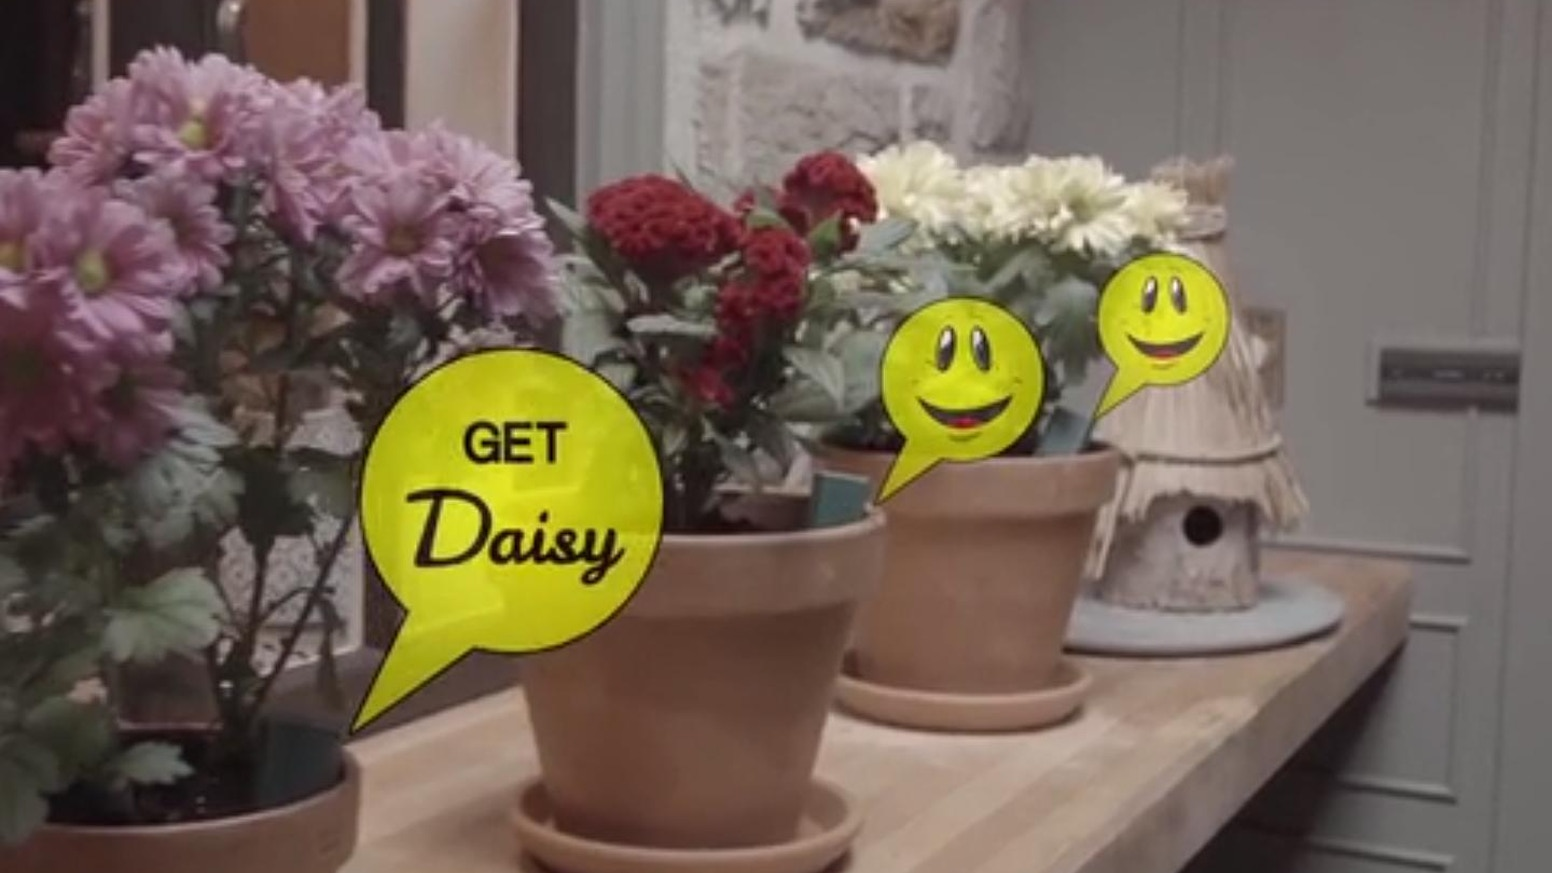 Daisy Potted Plant Soil Moisture Sensor And App By Digital Spring